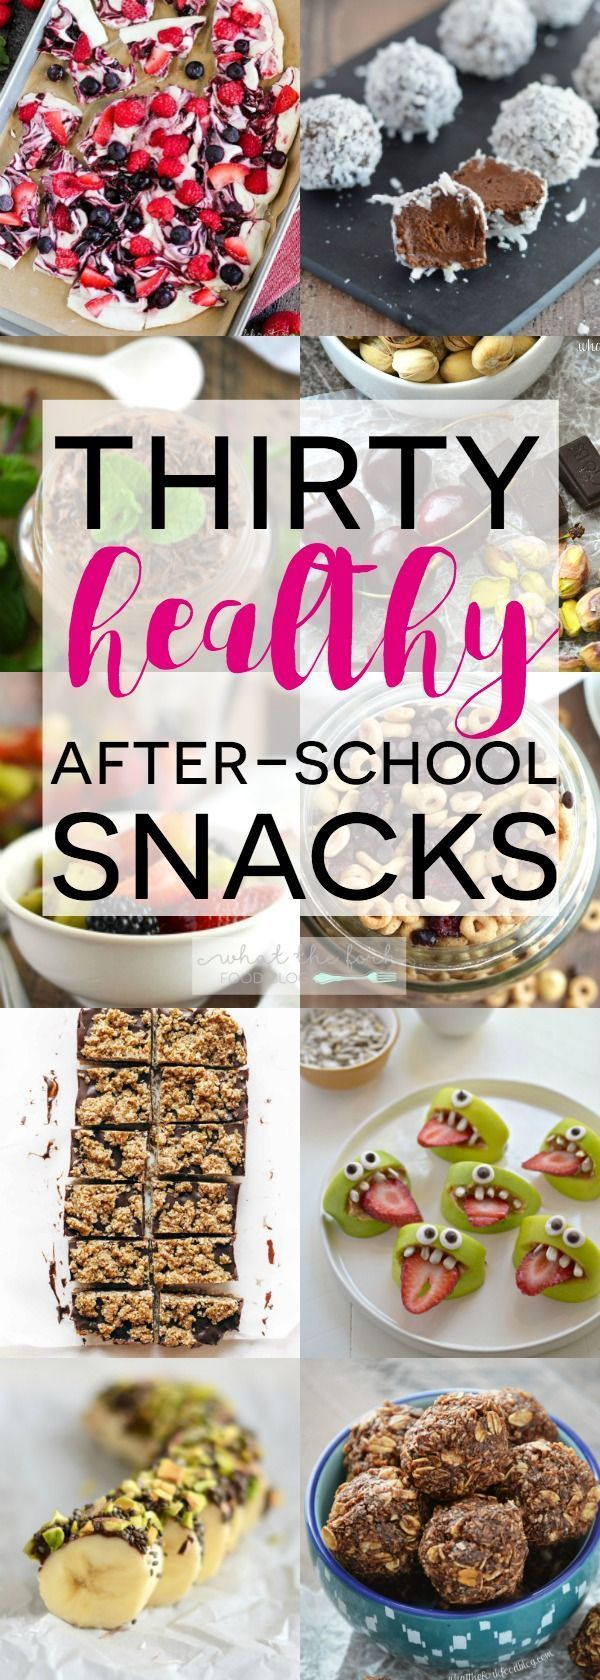 A list of 30 Healthy After-School Snacks to help you and your kids power through the afternoon. All are simple, easy to make recipes and are kid-friendly. From @Sharon | What The Fork Food Blog | whattheforkfoodbl...